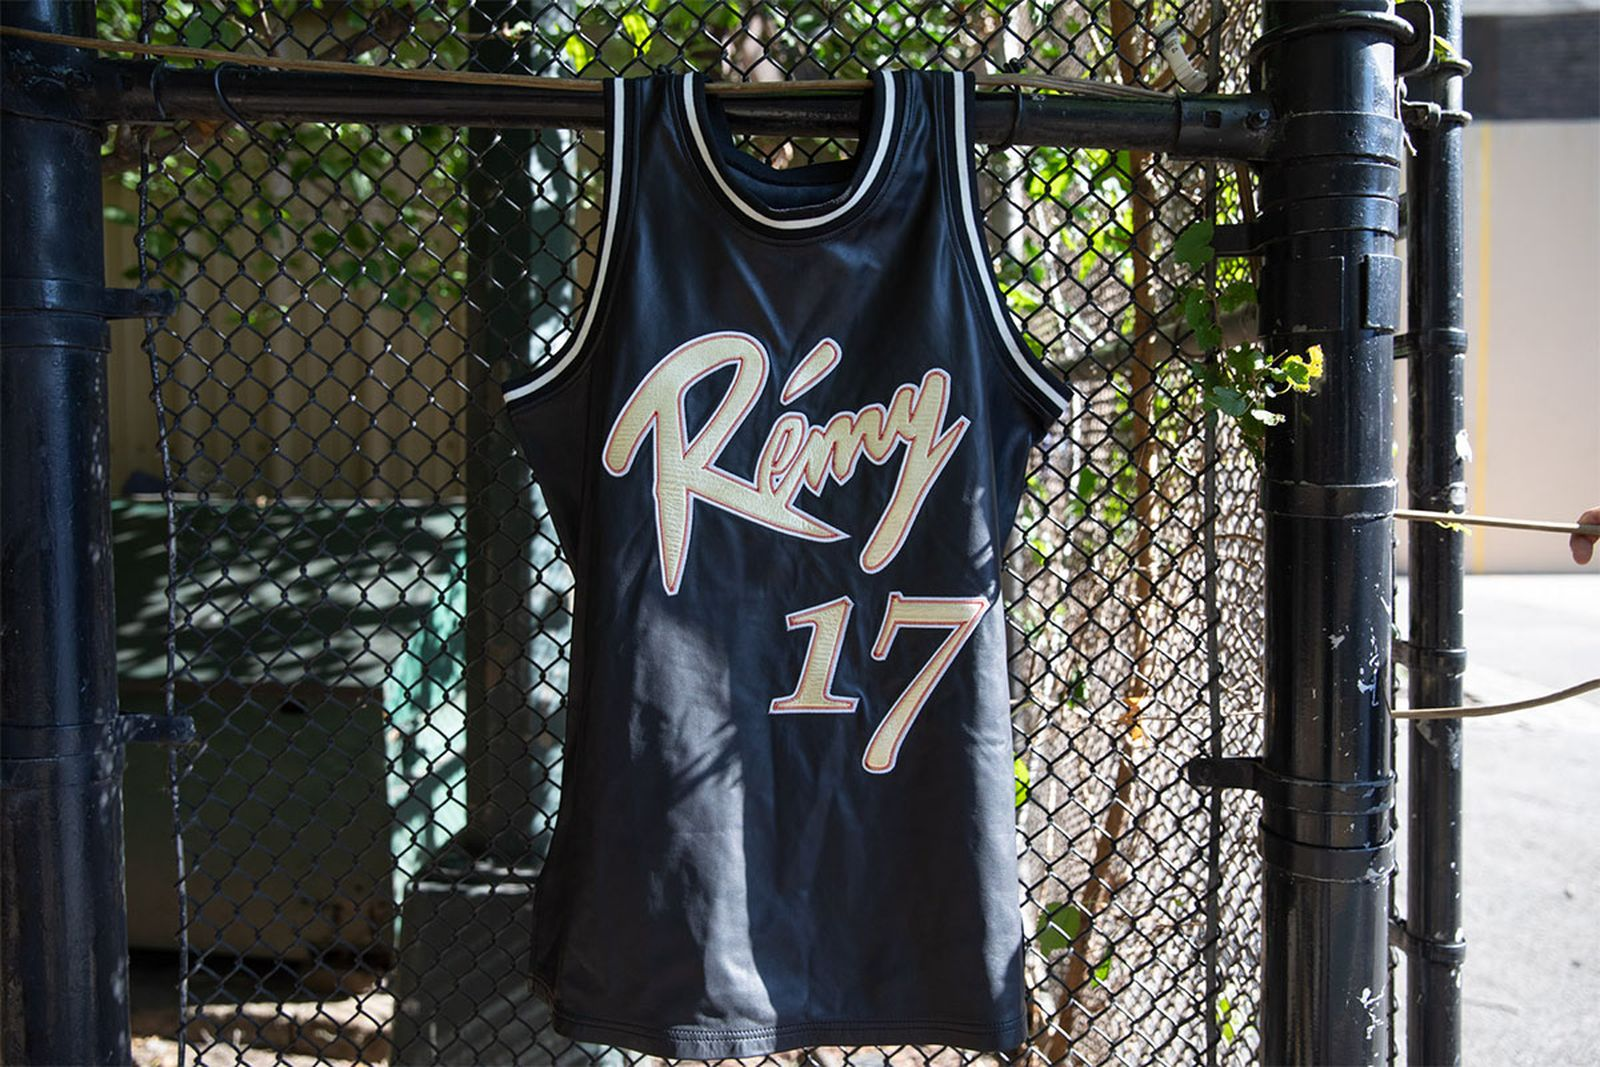 remy martin don c jersey just don